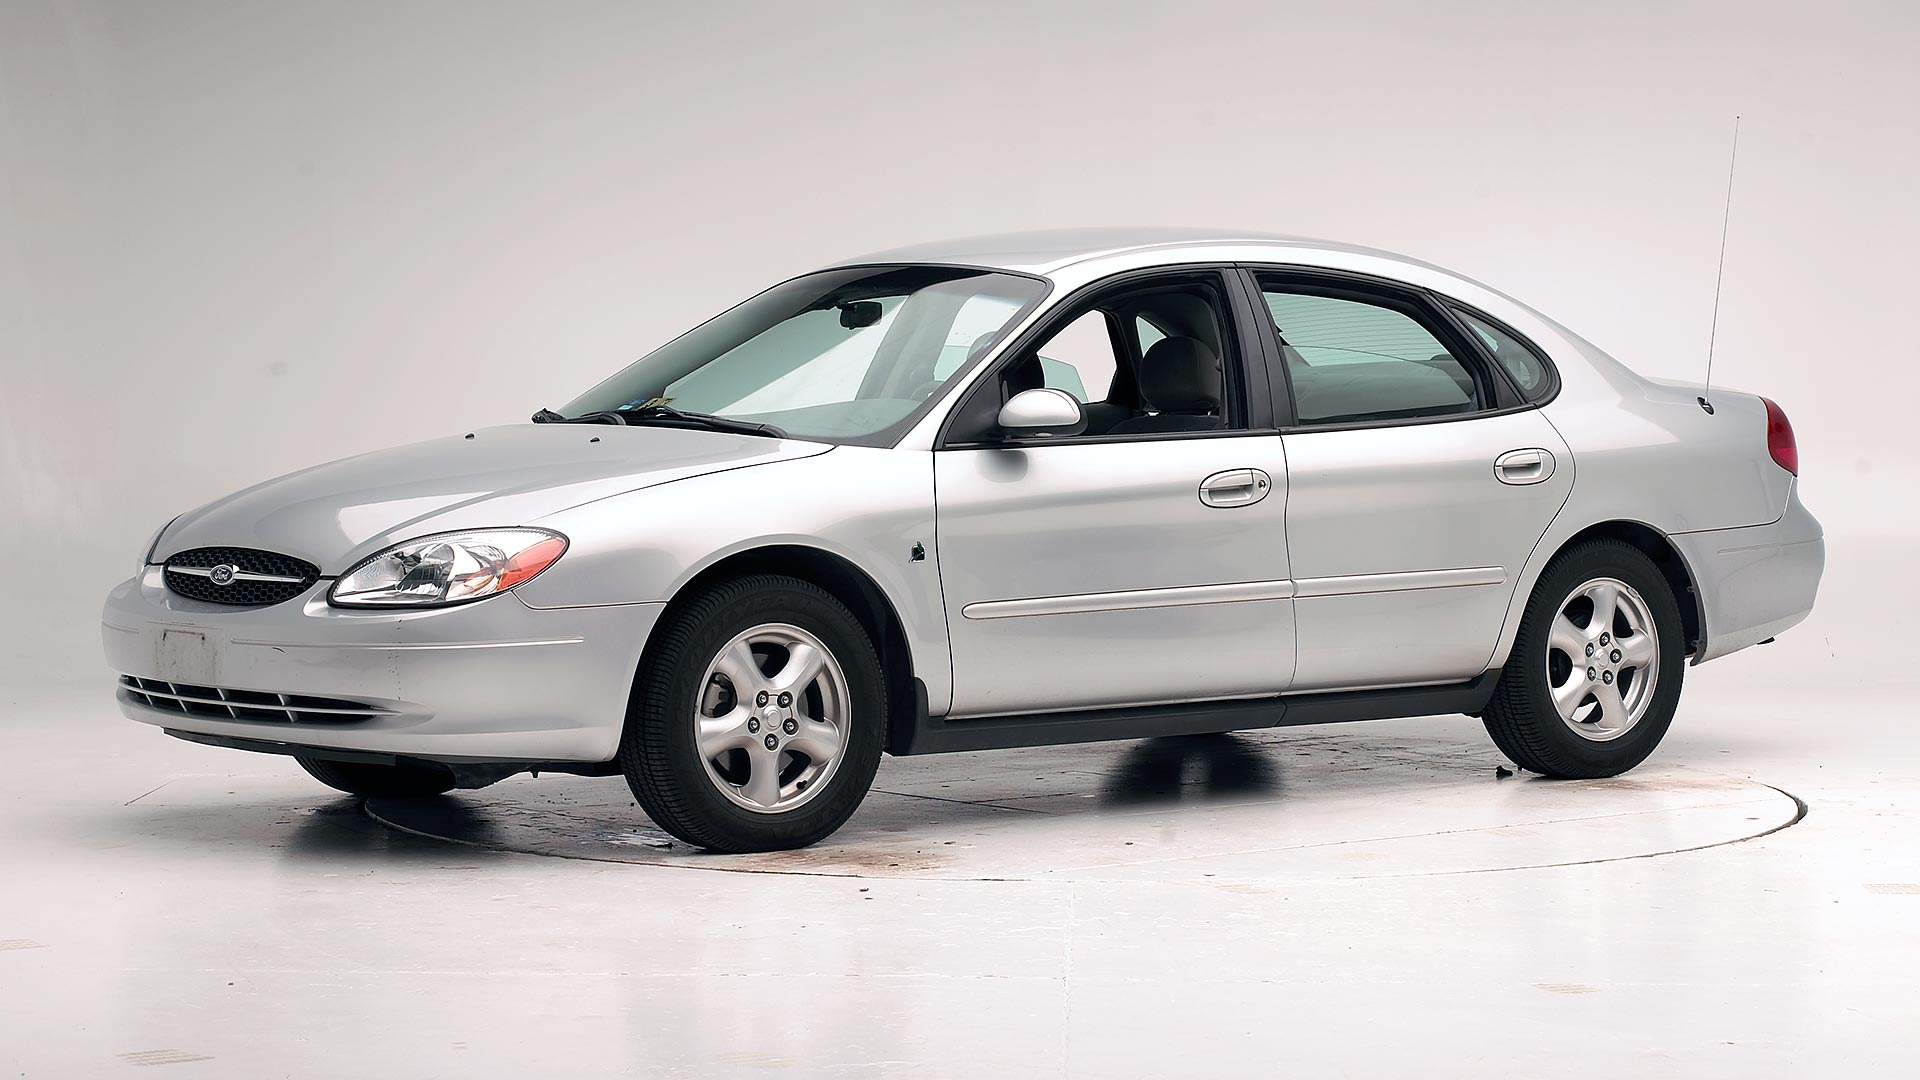 2002 Ford Taurus 4-door sedan